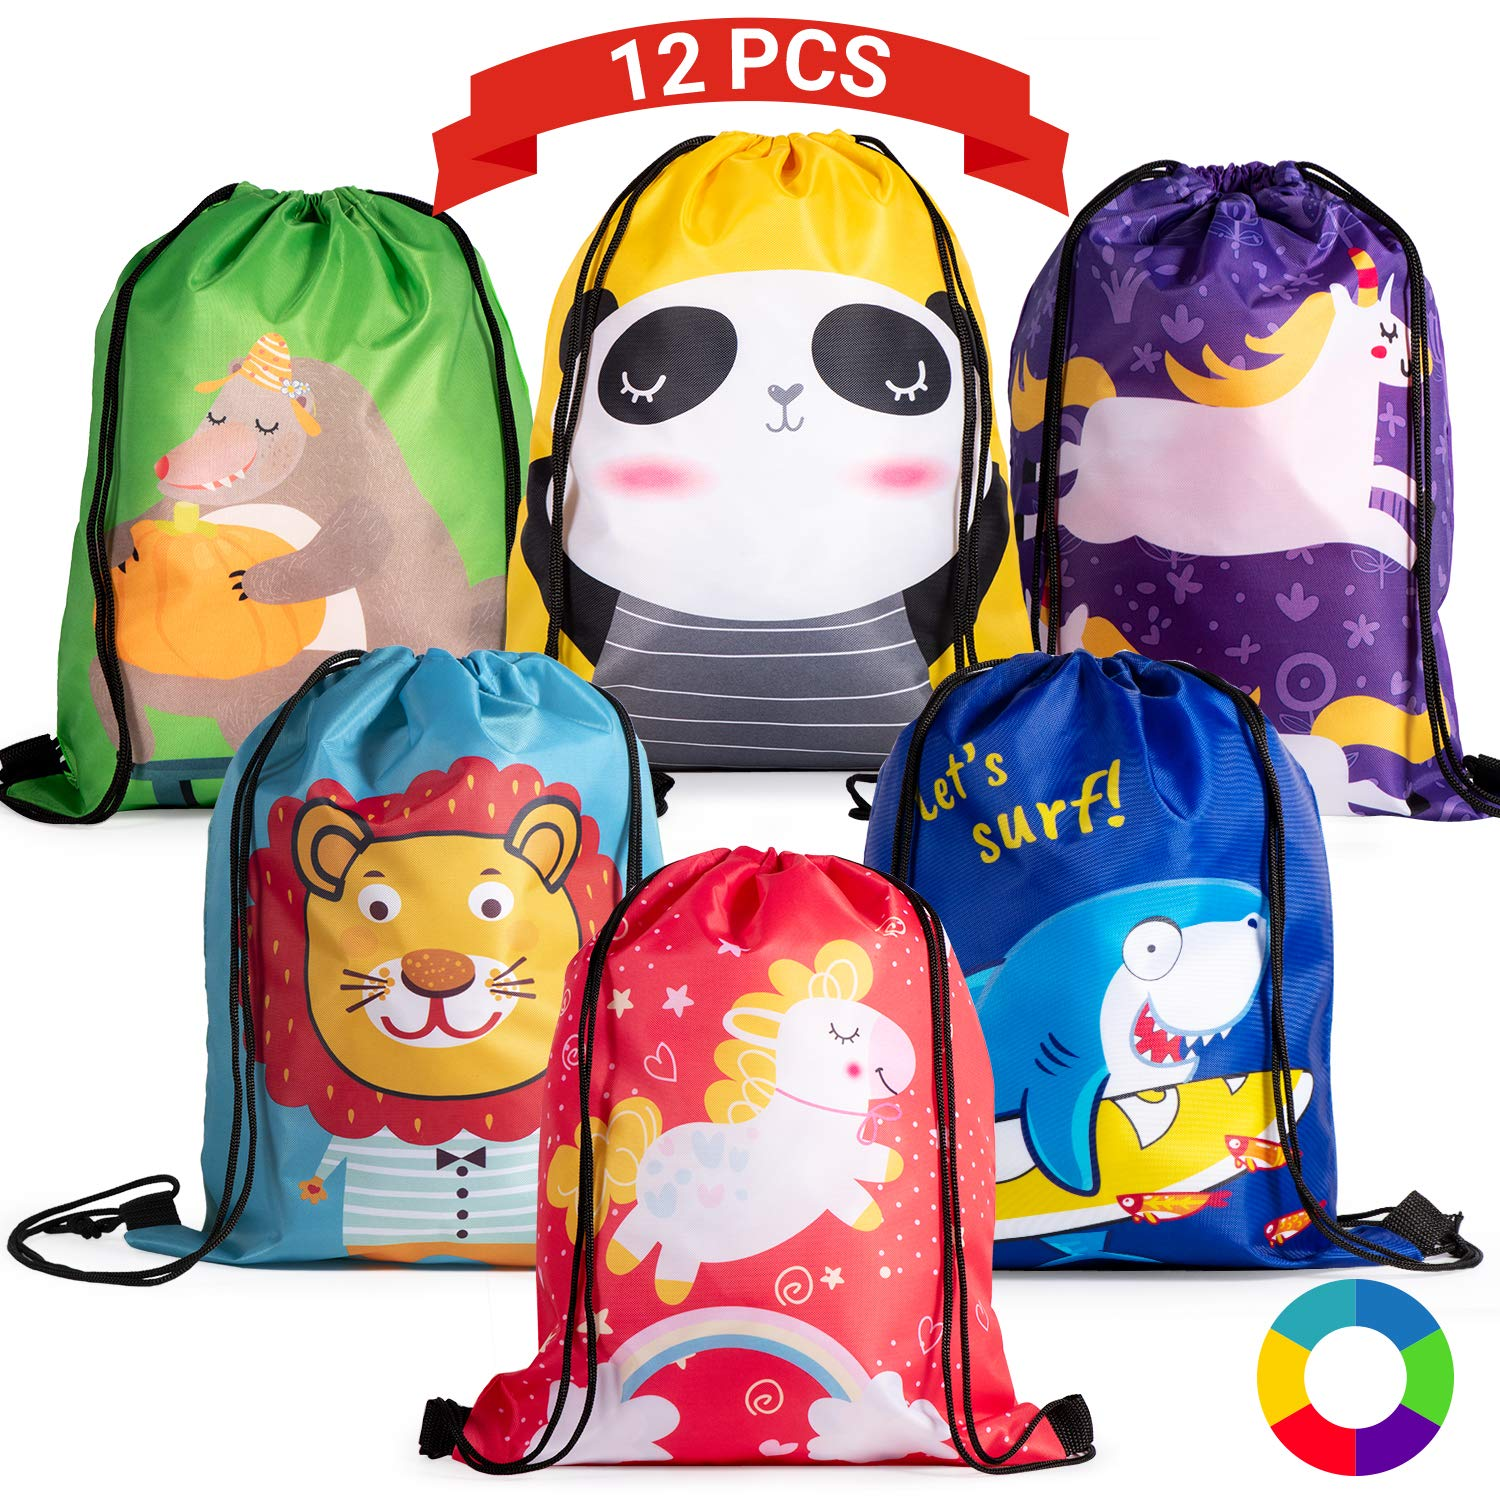 Joyjoz Kids Party Favor Bags, Drawstring Party Bags for Girls Boys, Birthday Candy Goodie Treat Bags for Christmas Party with 6 Animal Designs,12 Packs